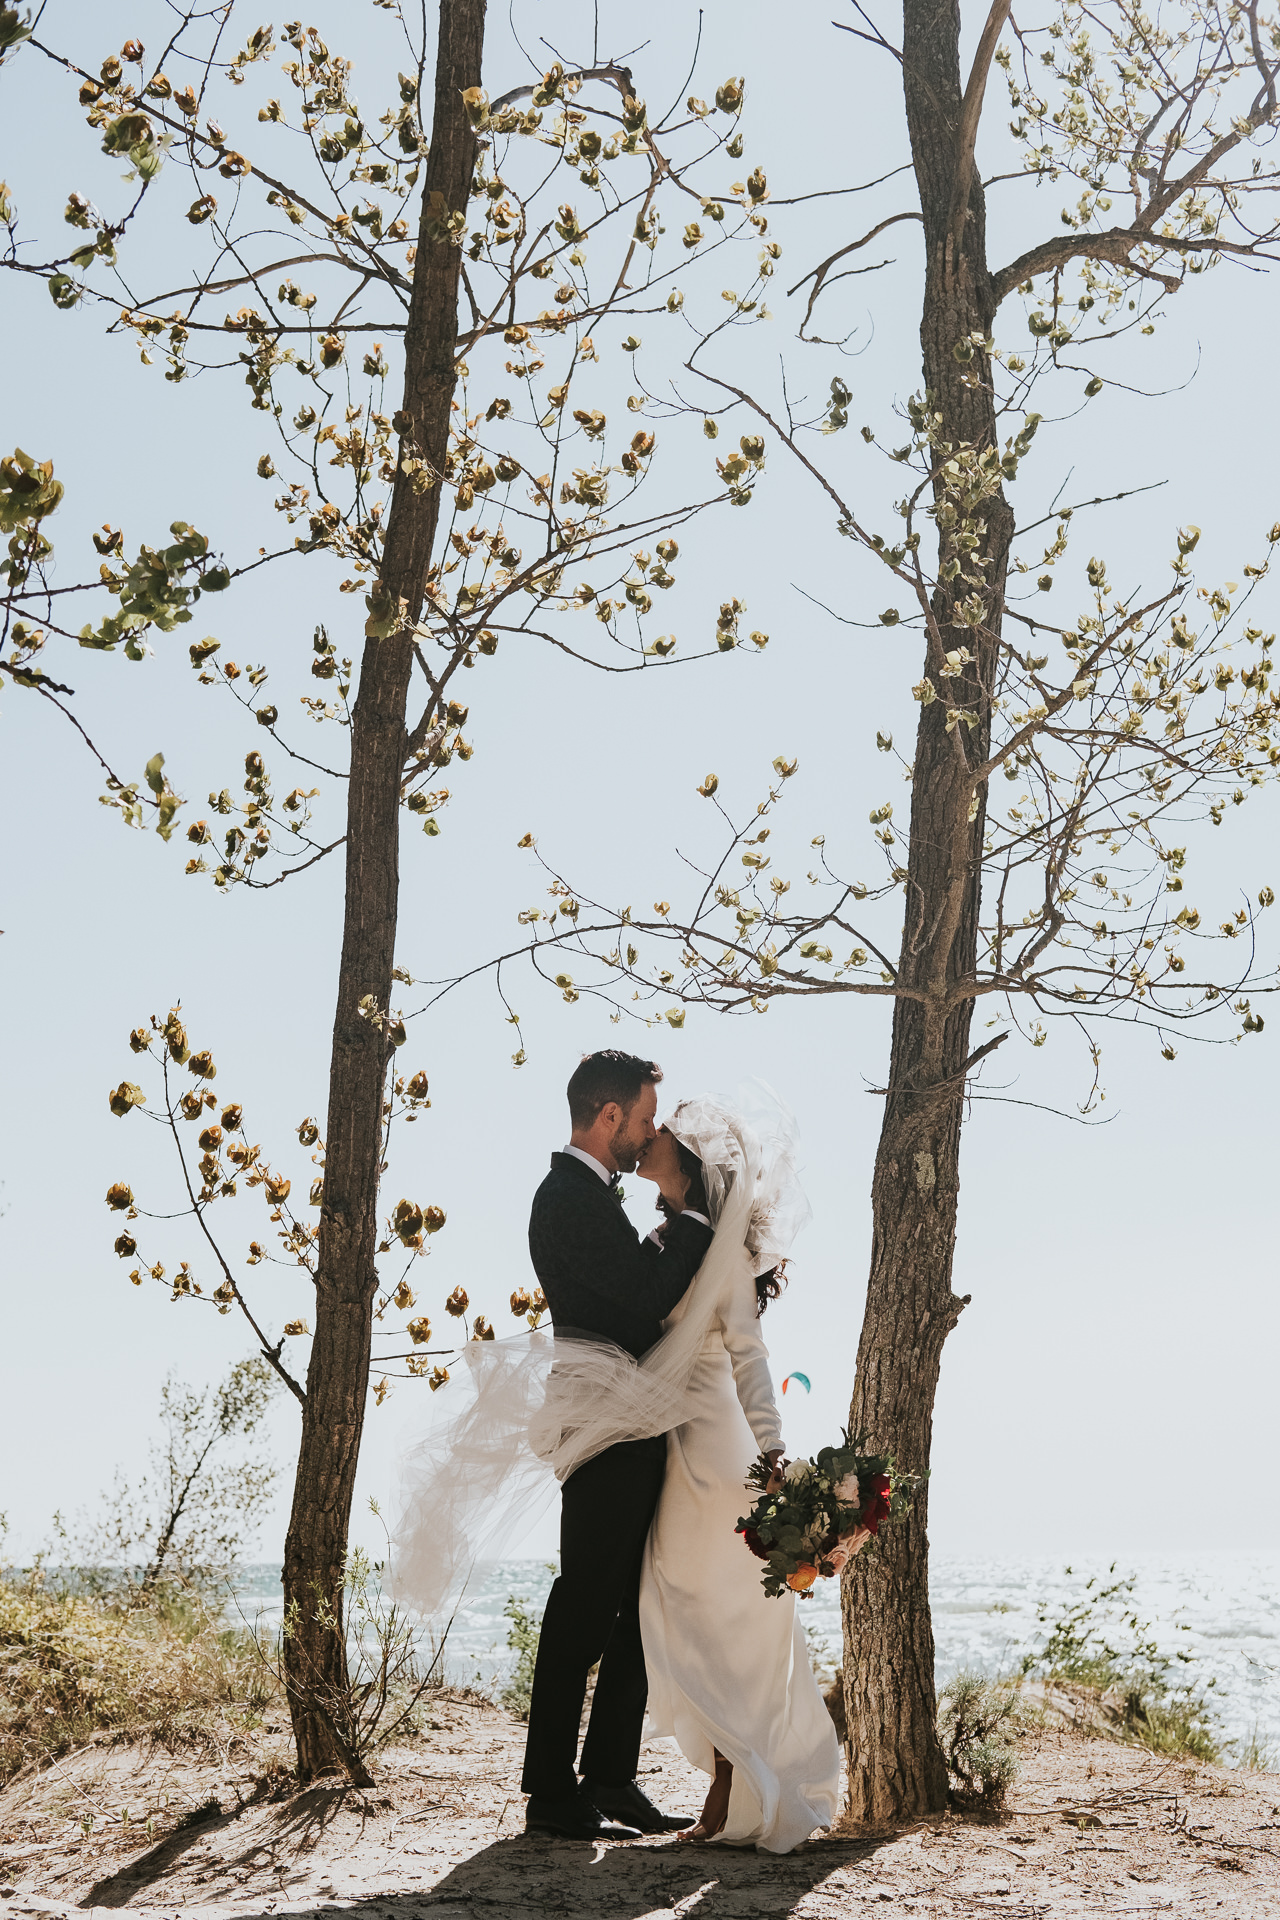 Bride and groom kiss against budding trees photographed by Joel and Justyna - Ottawa wedding photographers